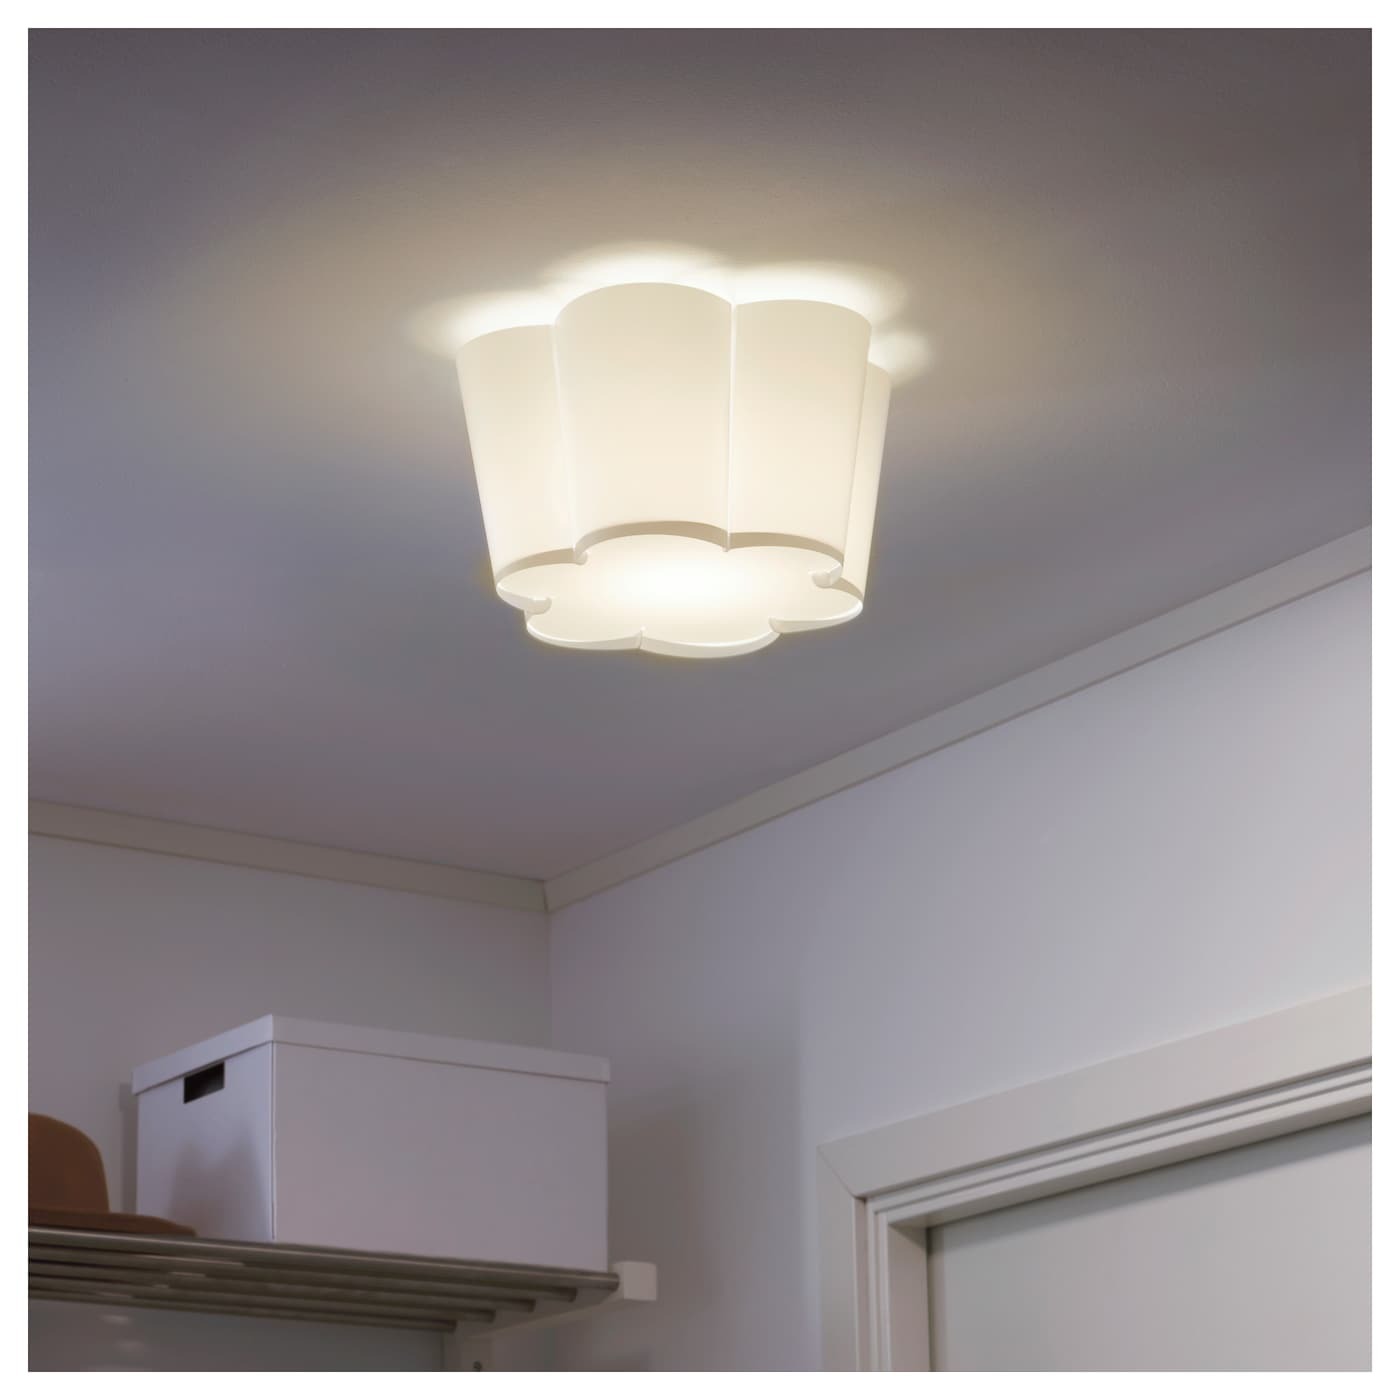 space light kalff age yellow ceiling wall for by louis lighting philips